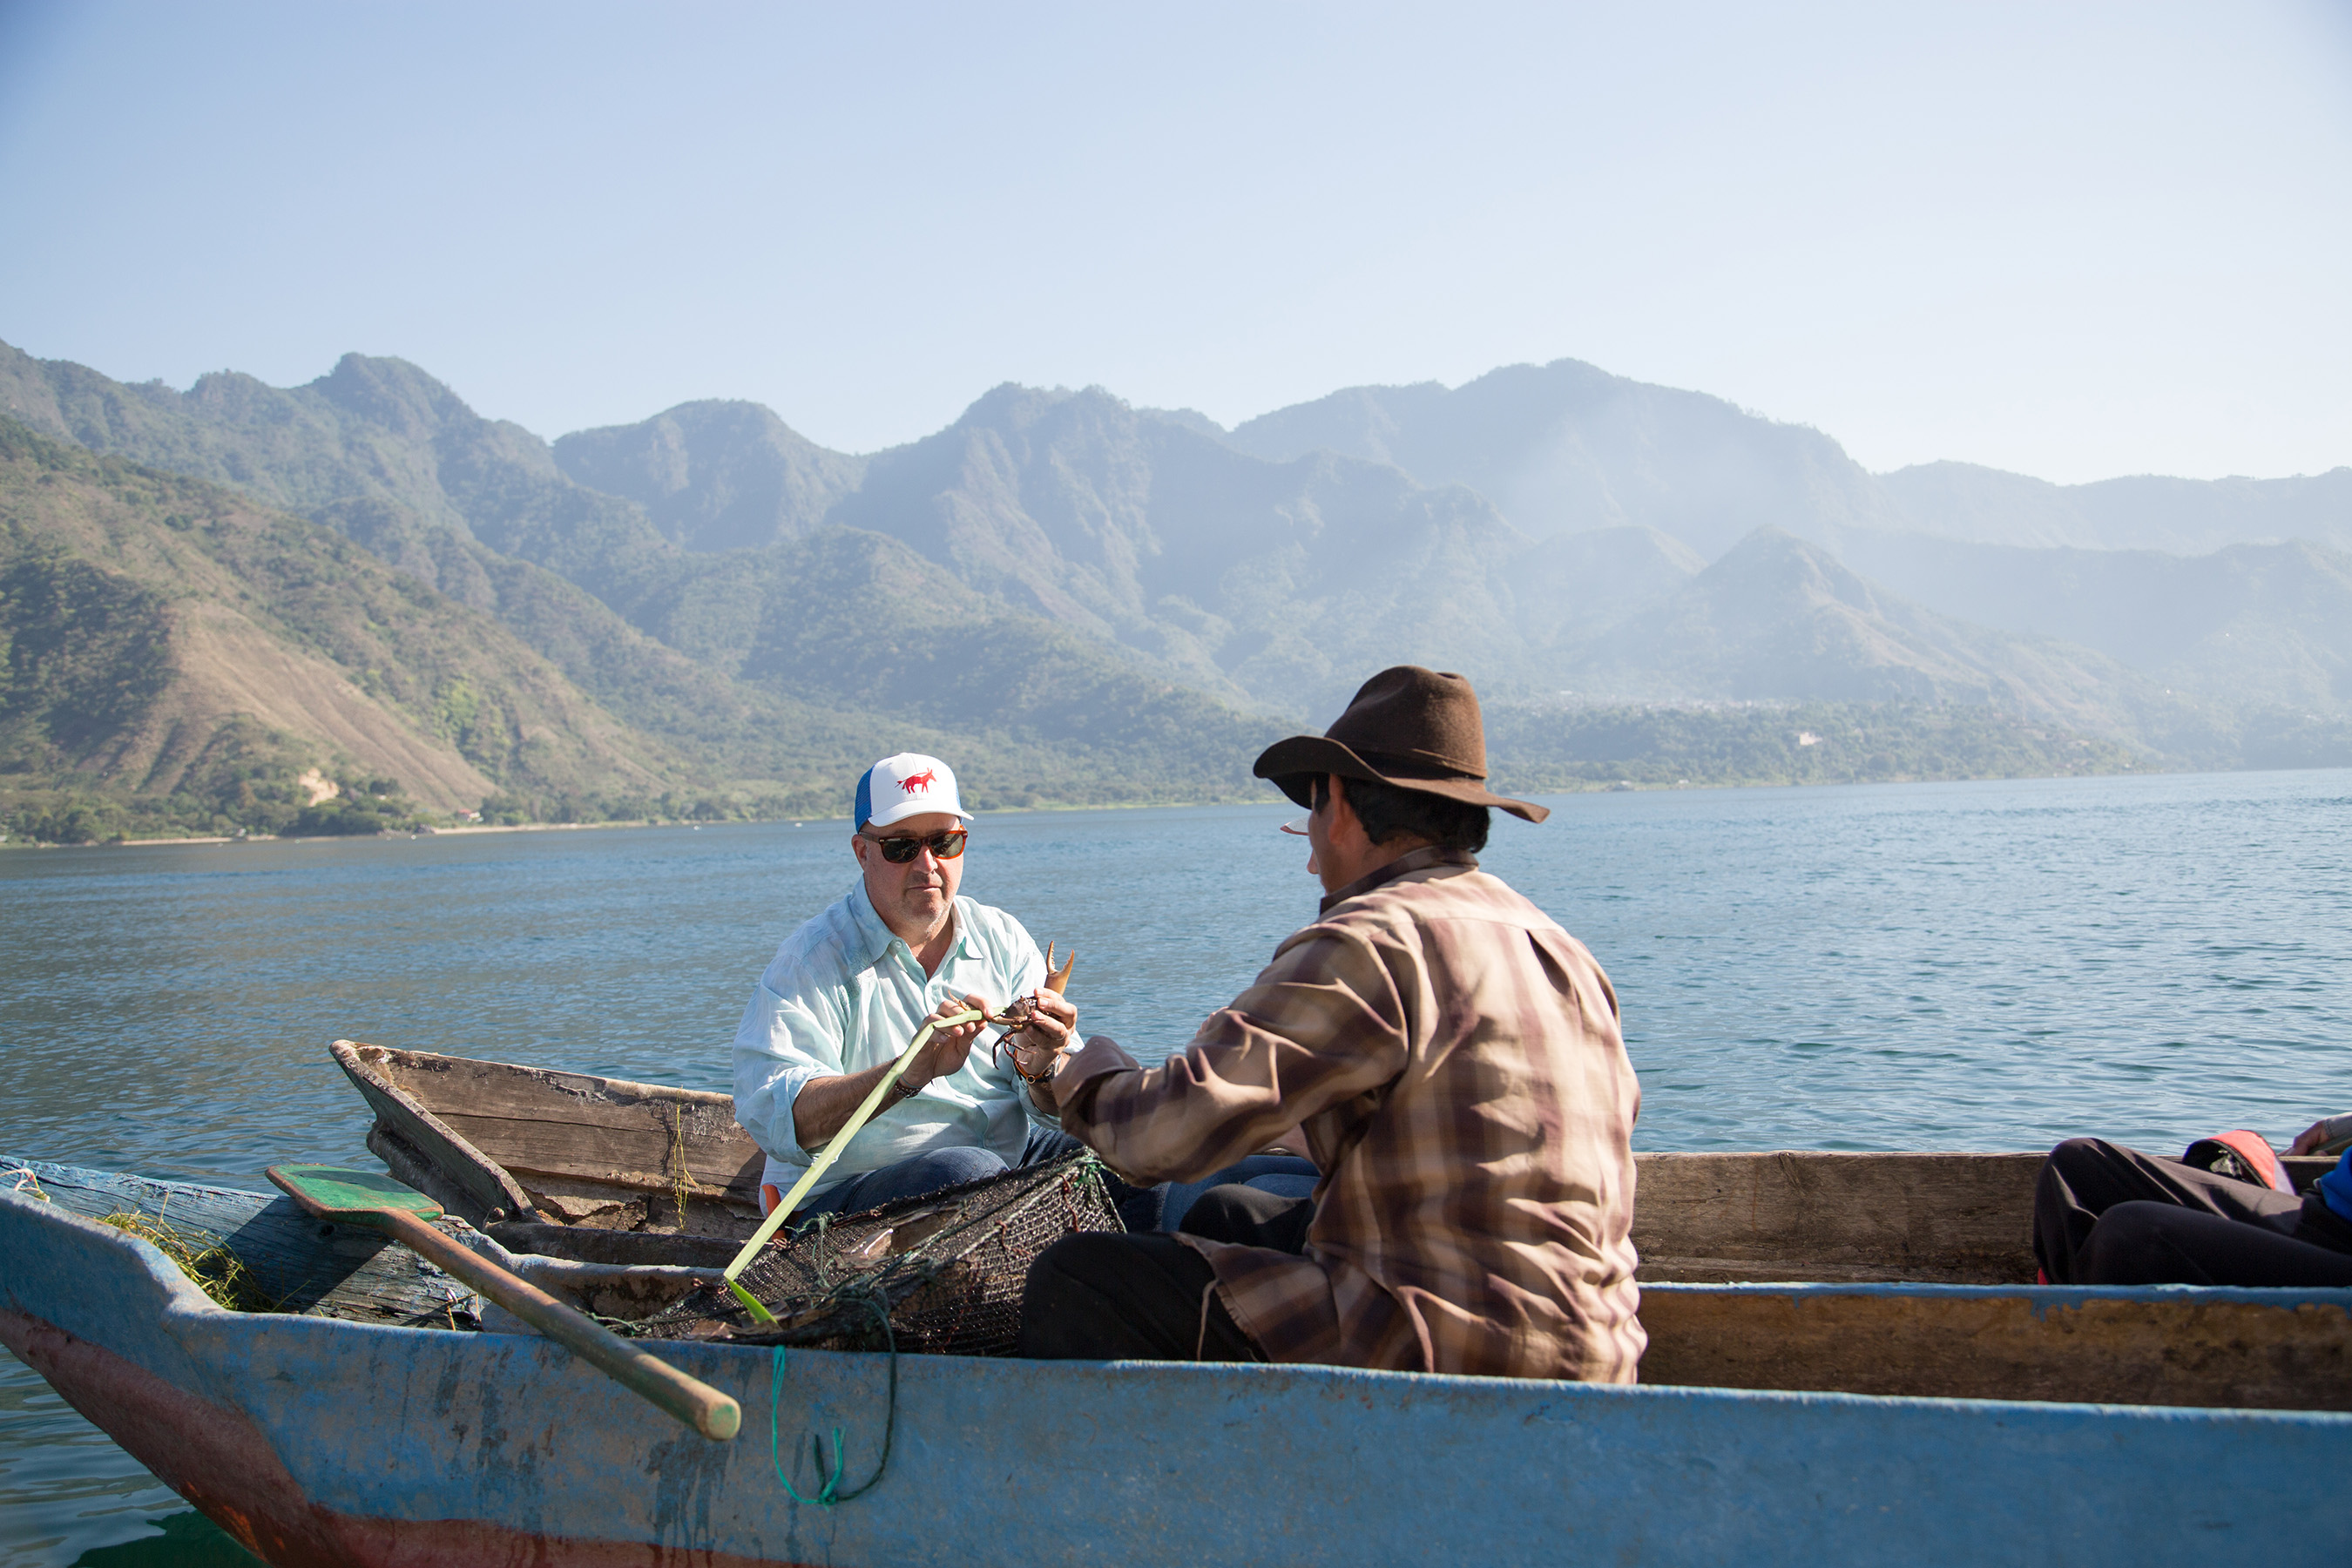 Host Andrew Zimmern learns how to wrap crabs in tule reeds for safe keeping from local fisherman Manuel Toc on Lake Atitlan.